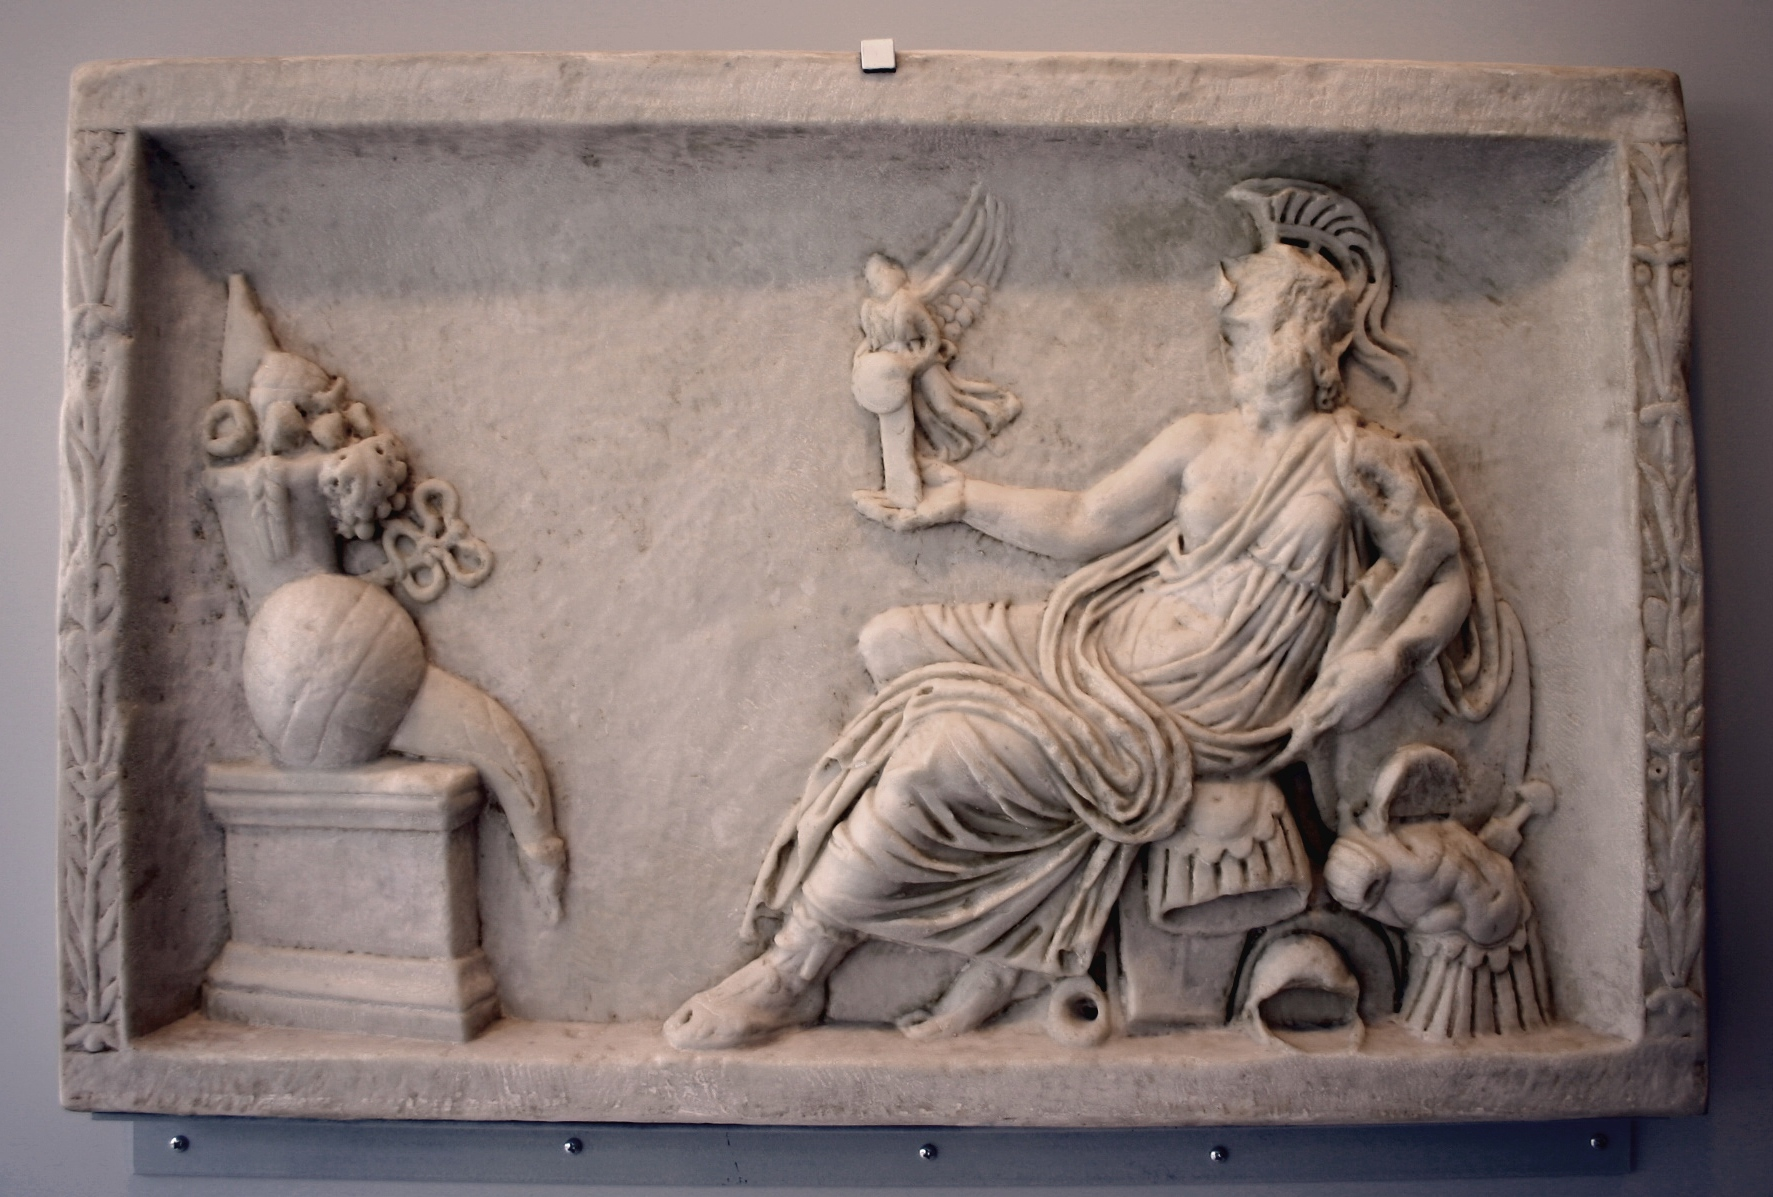 ancient rome and traditional roman values Answerscom ® wikianswers ® categories history, politics & society history ancient history ancient rome roman empire what are traditional roman values.